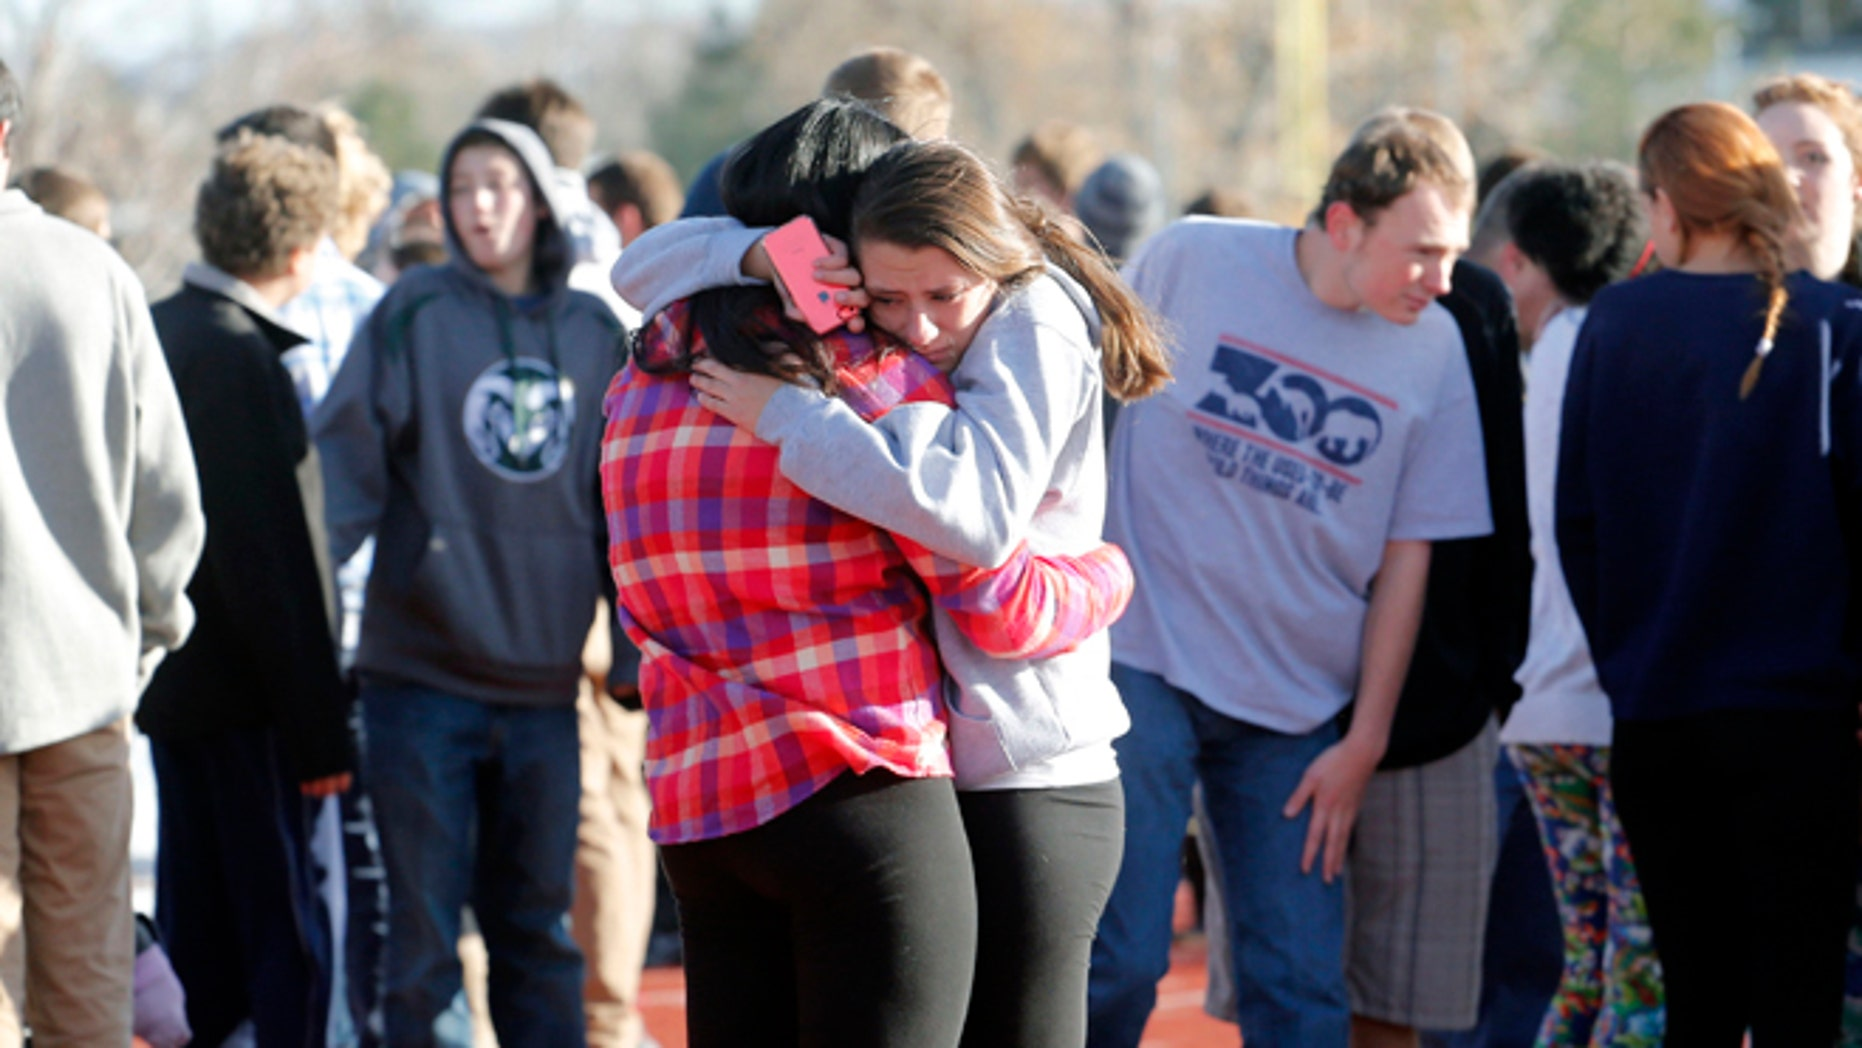 Students comfort each other at Arapahoe High School in Centennial, Colo., on Friday, Dec. 13, 2013, where a student shot at least one other student at a Colorado high school Friday before he apparently killed himself, authorities said. The shooter entered Arapahoe High School in a Denver suburb armed with a shotgun and looking for a teacher he identified by name, said Arapahoe County Sheriff Grayson Robinson. (AP Photo/Ed Andrieski)